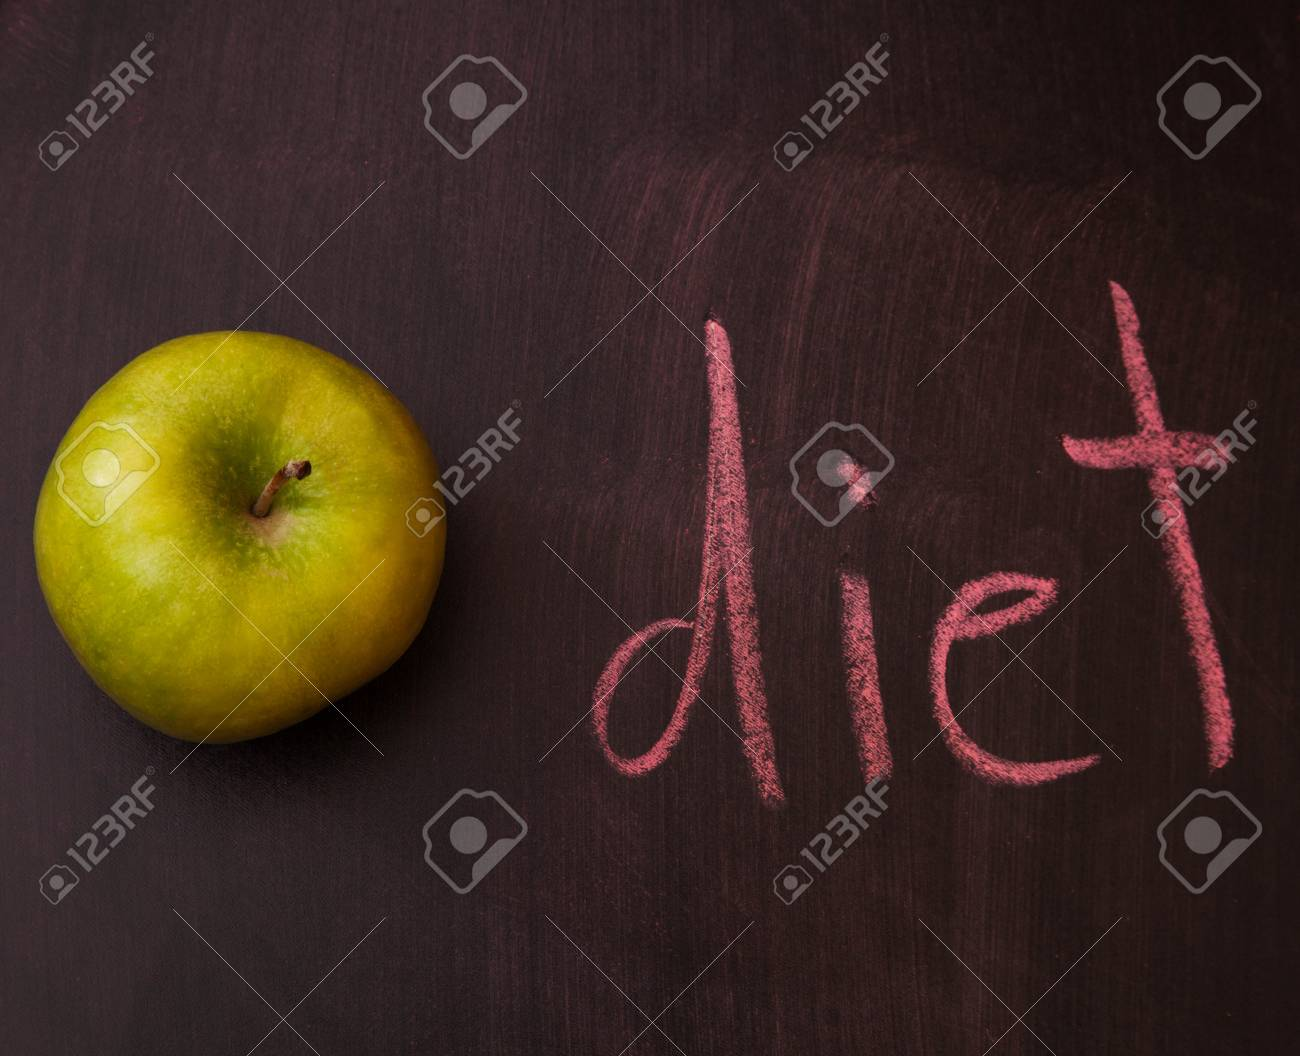 Classroom chalkboard with apples. Stock Photo - 19289938